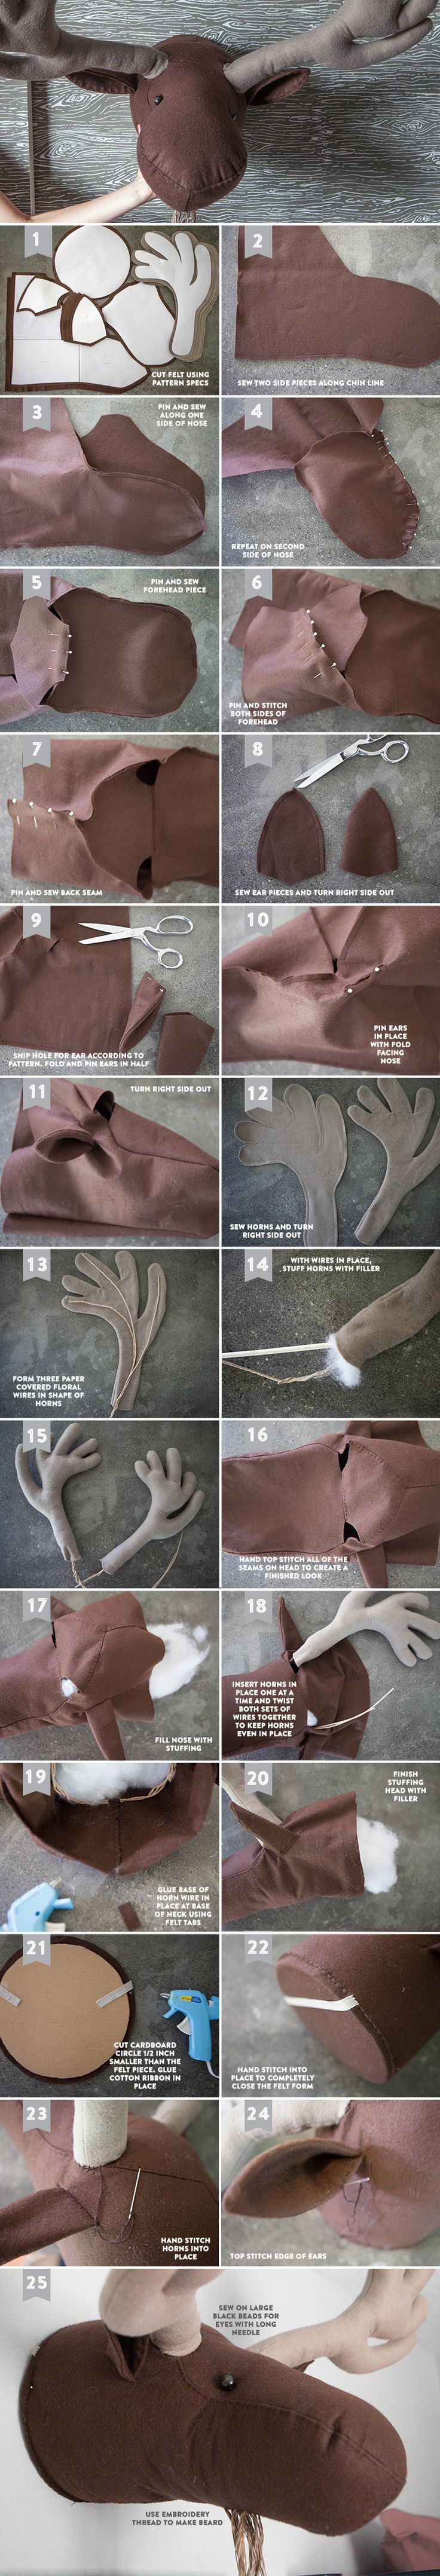 DIY Felt Moose Head. Template and tutorial | liagriffith http://liagriffith.com/diy-felt-moose-head/